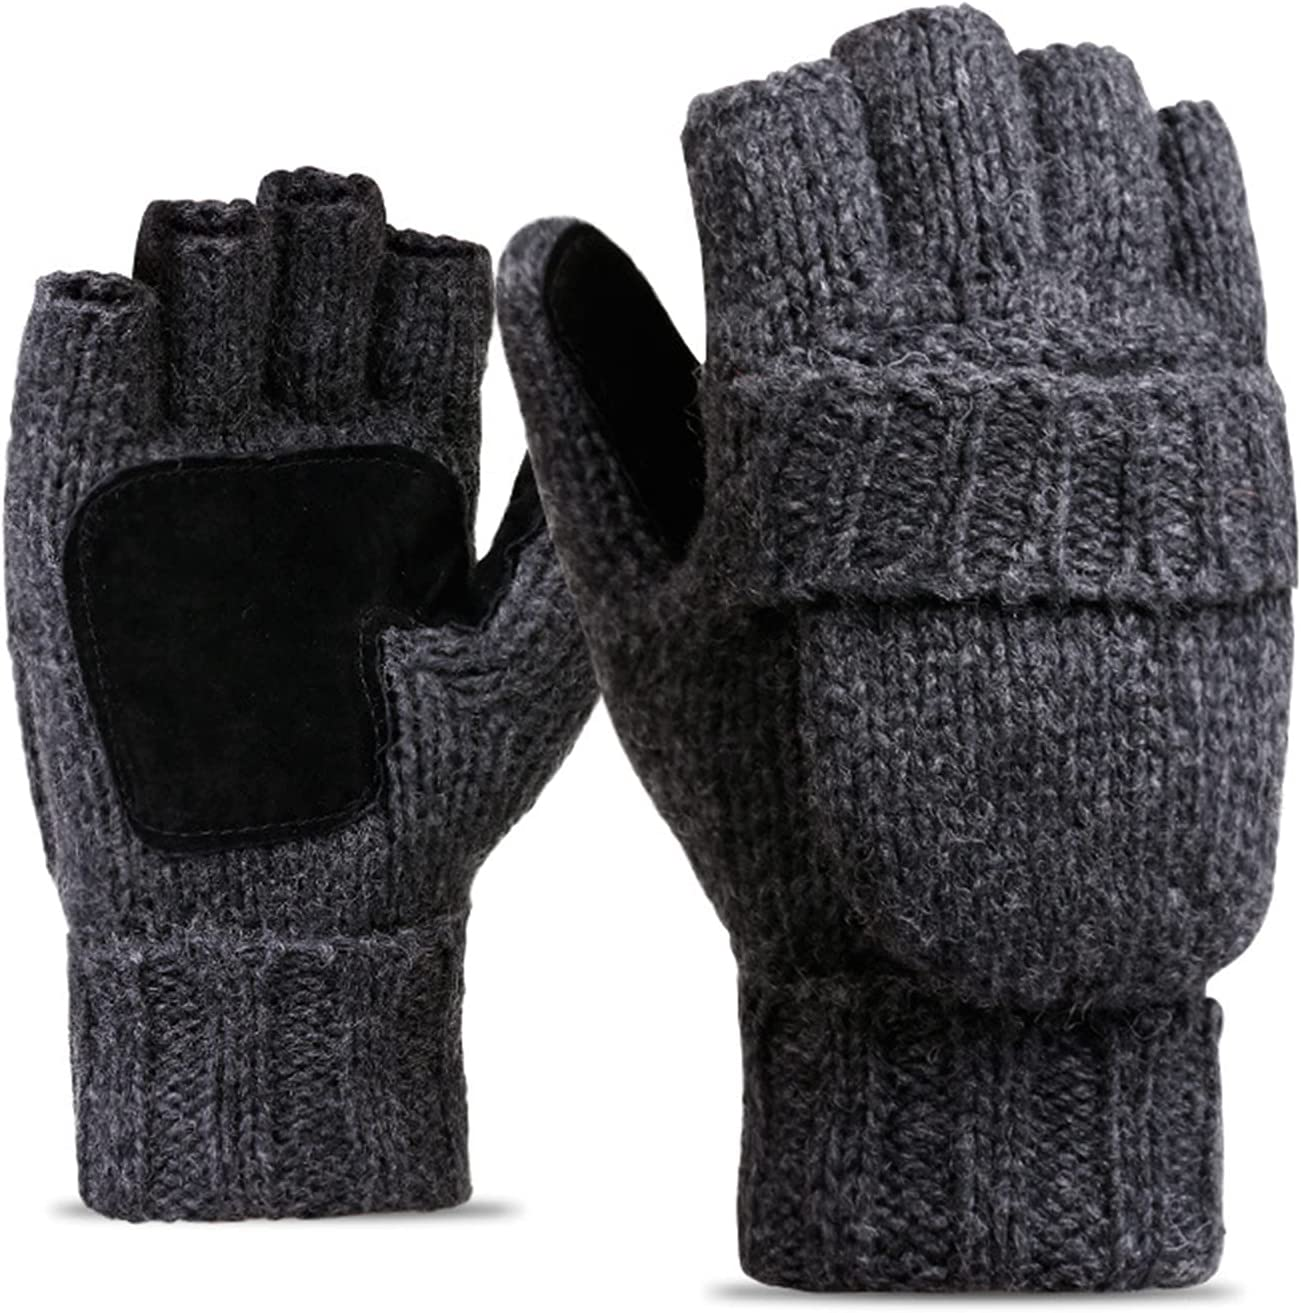 HelloCreate Winter Fingerless Clamshell Woolen Knitted Gloves Wool Mittens Warm Mitten Glove in Cold Weather for Men and Women